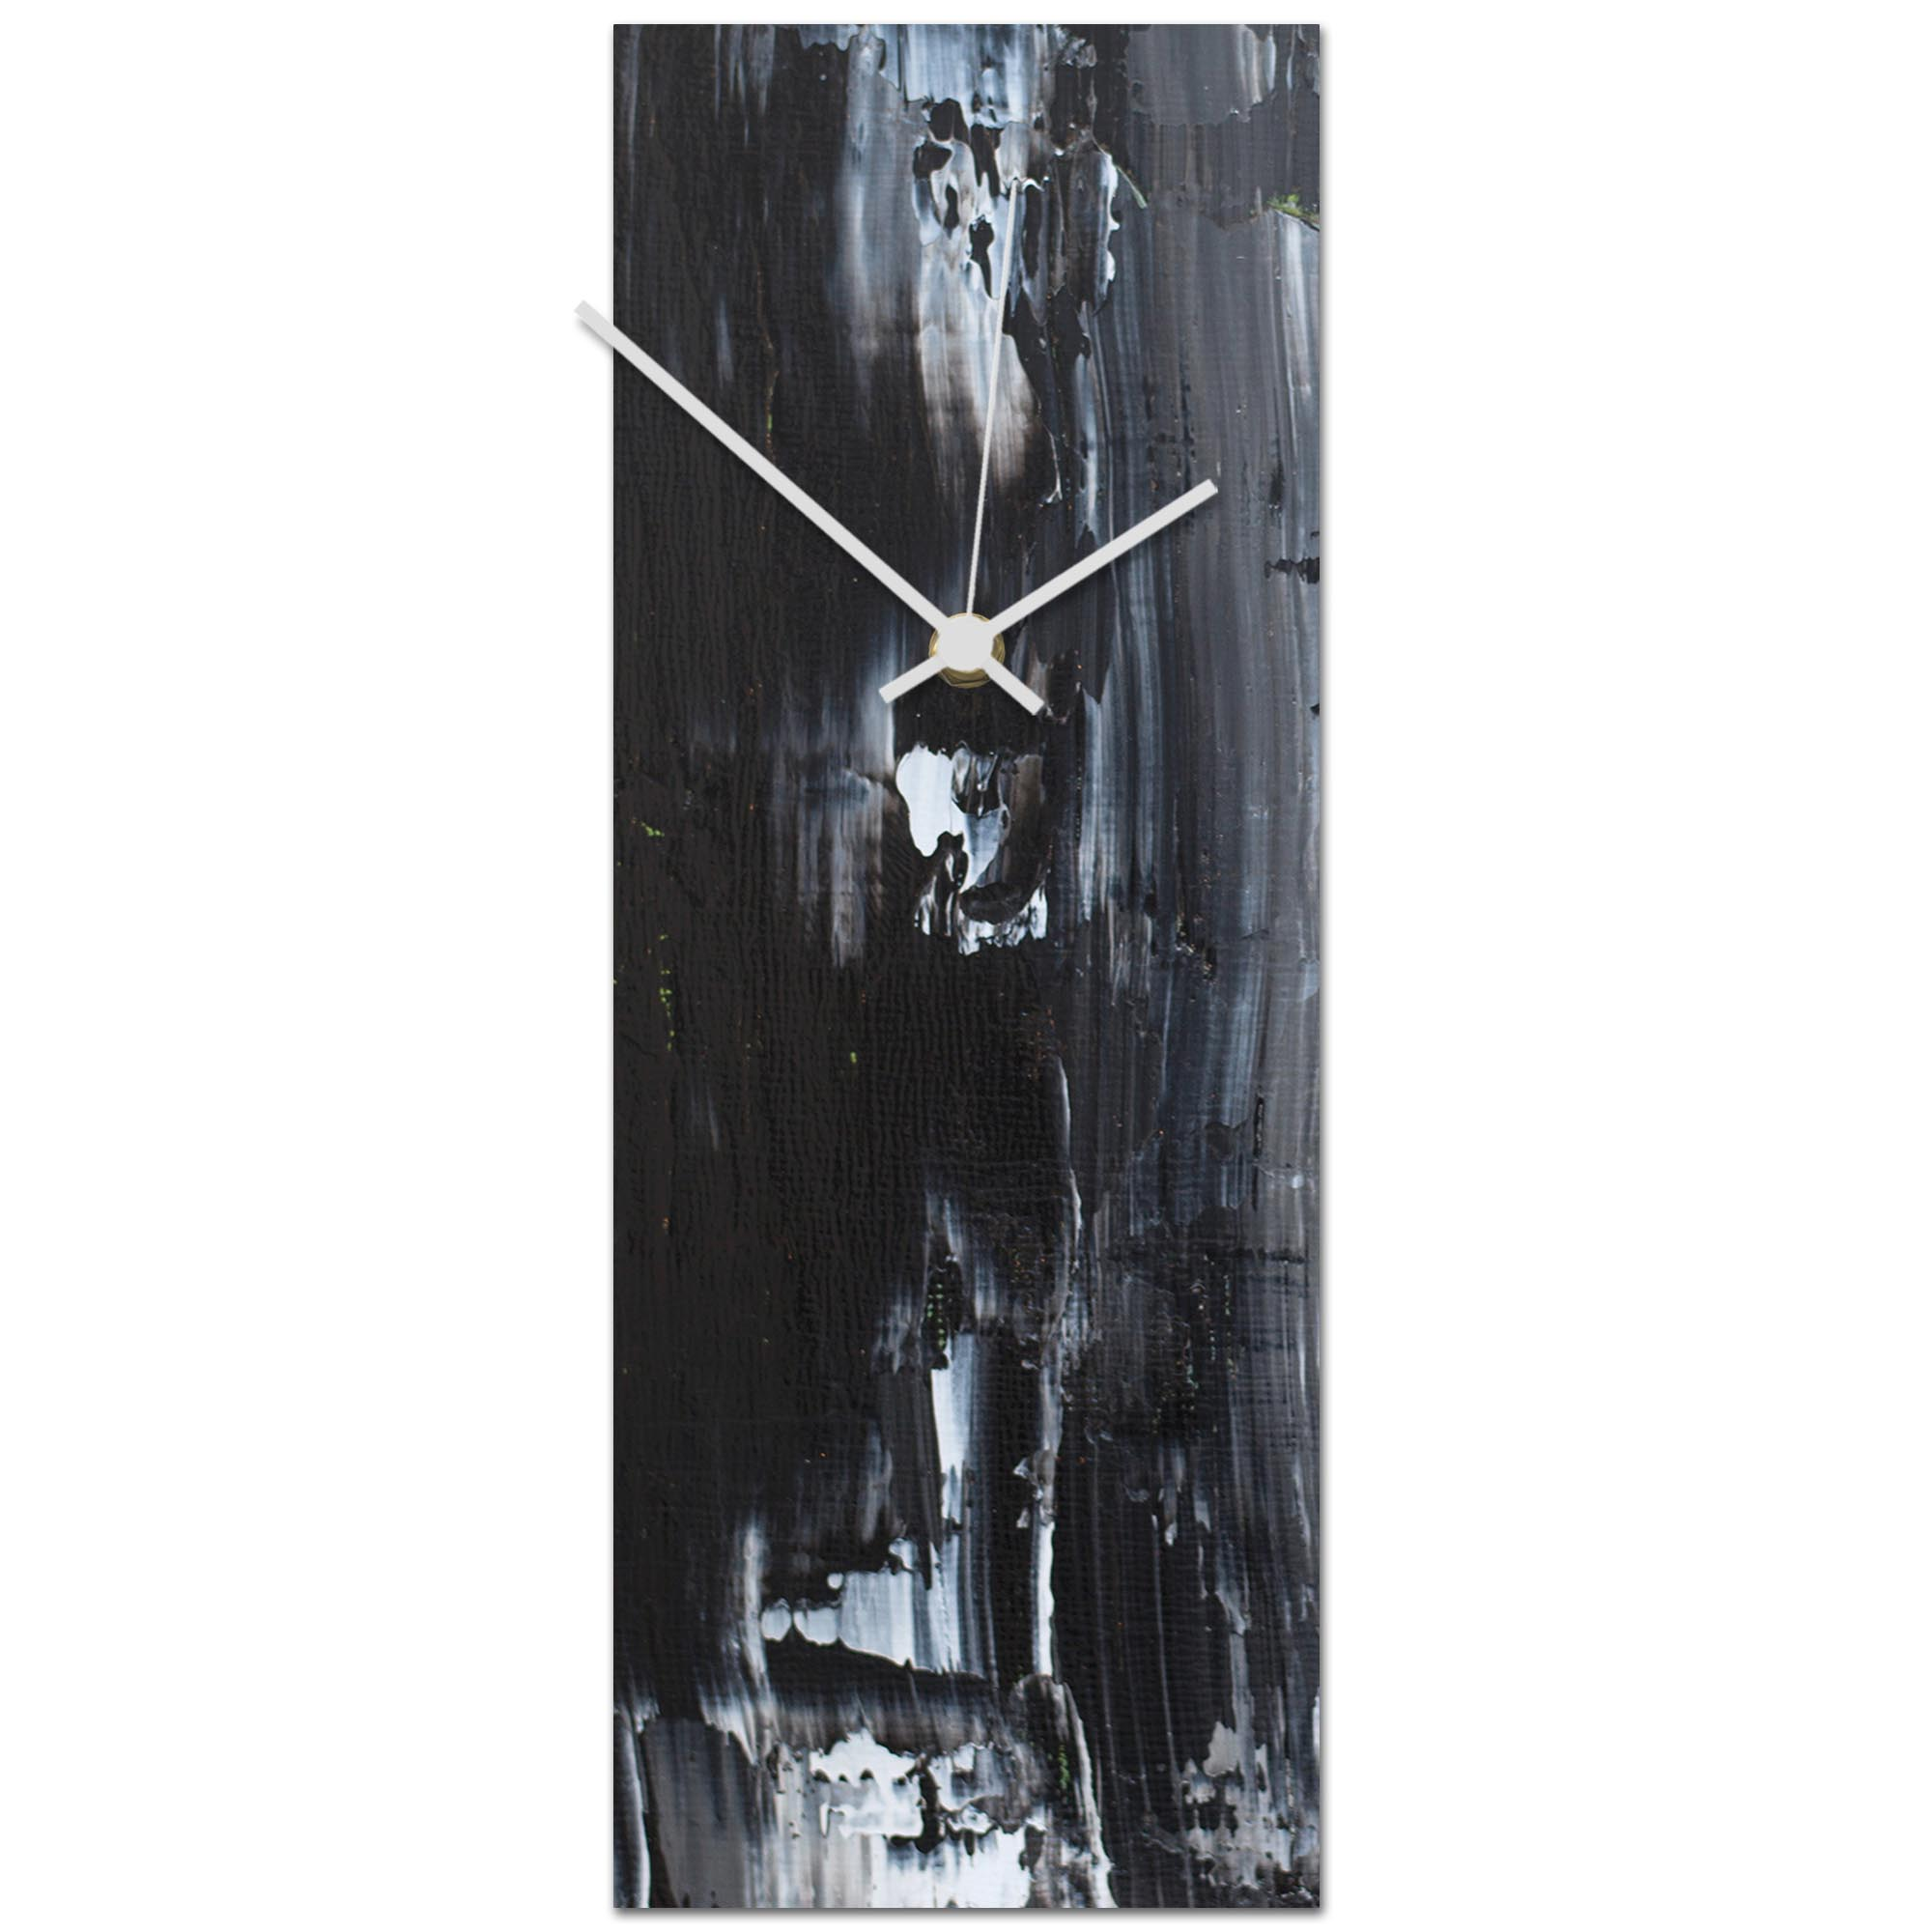 Urban Black Clock 6x16in. Metal